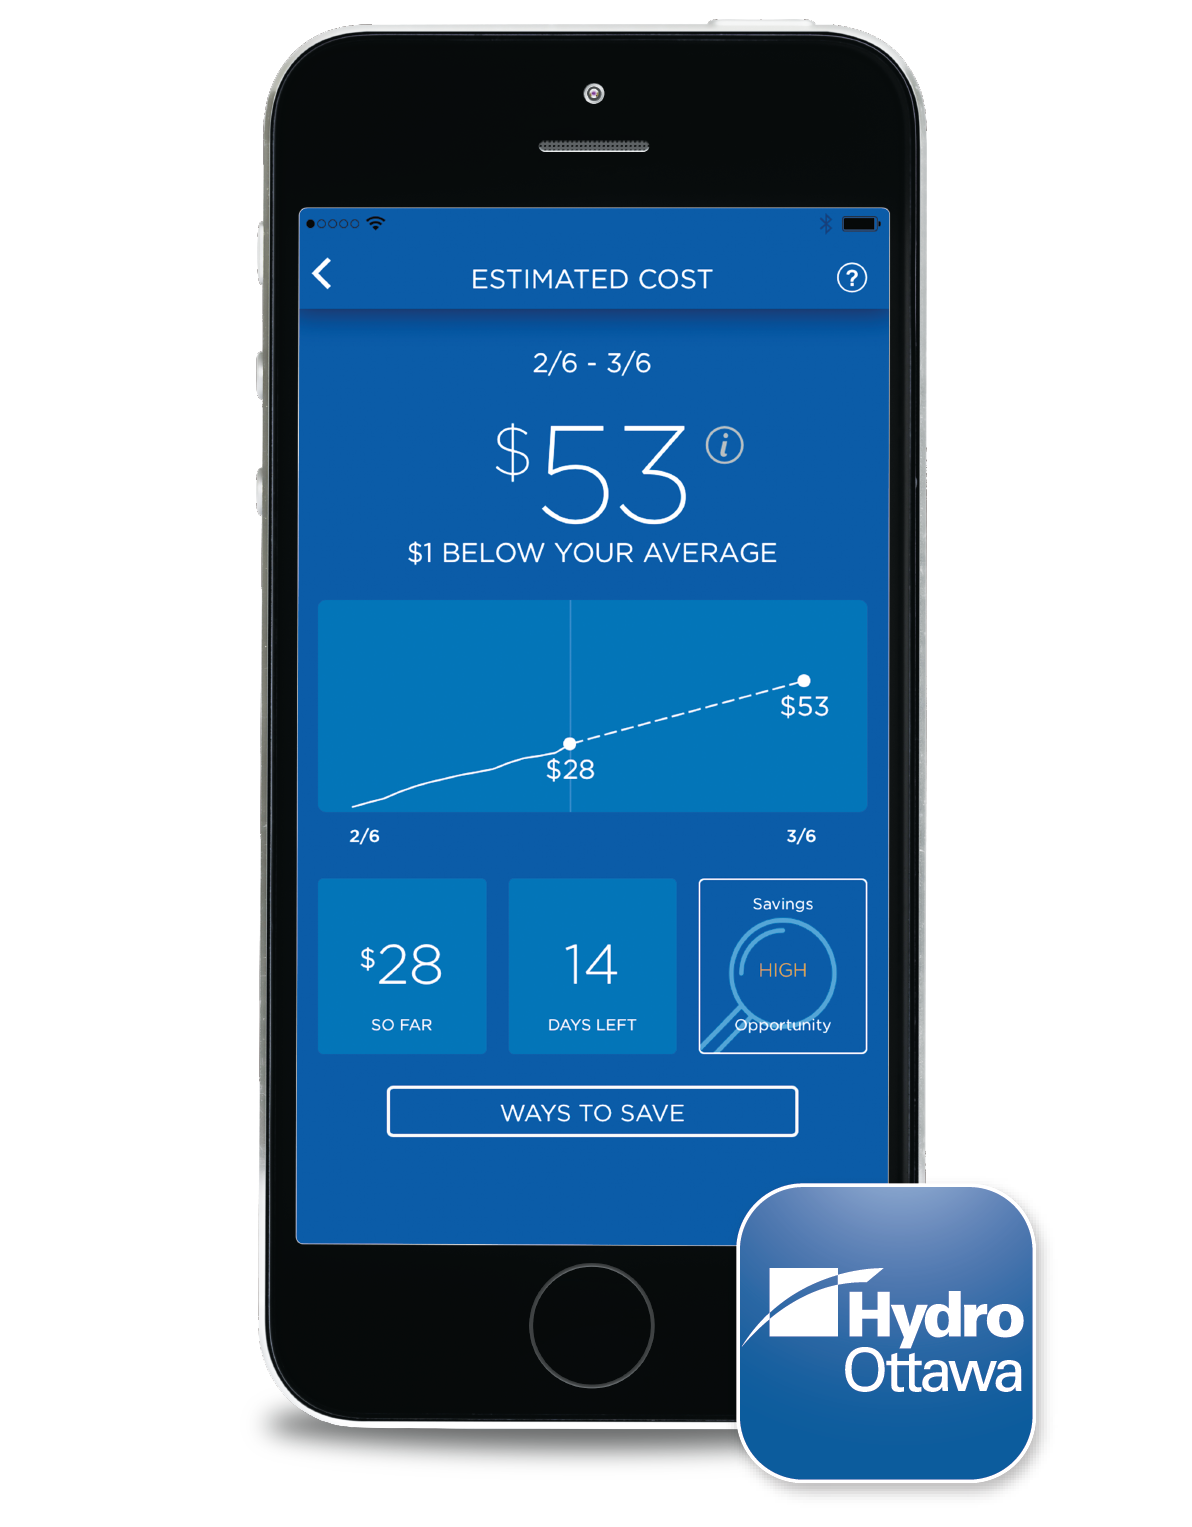 iPhone with Hydro Ottawa's app showing the estimated cost feature